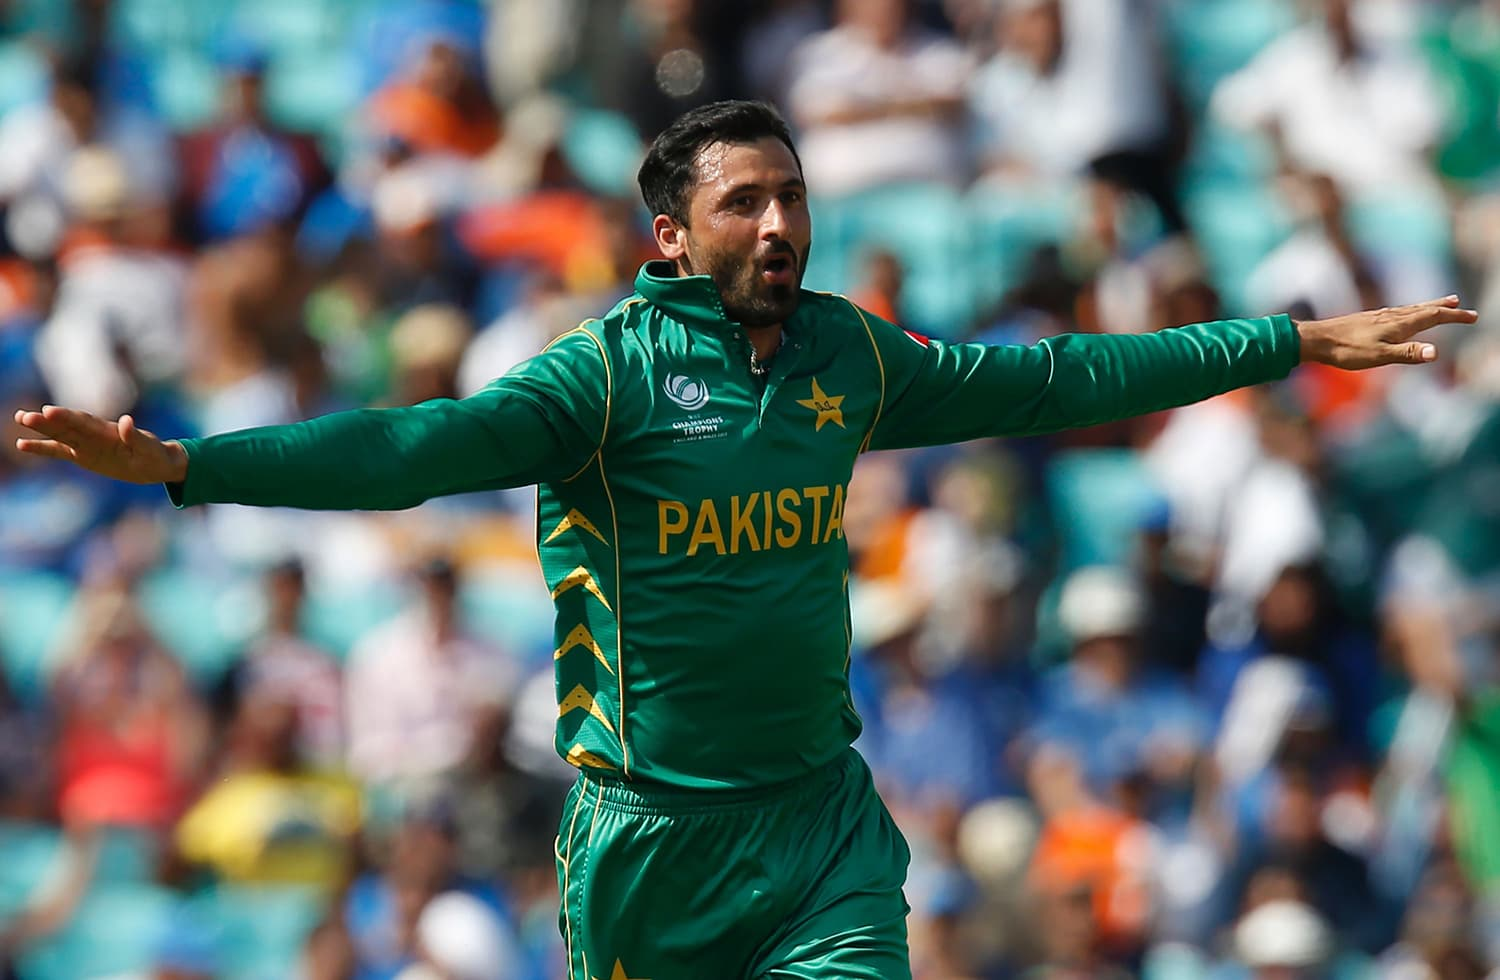 Junaid Khan celebrates after taking Ravindra Jadeja's wicket.